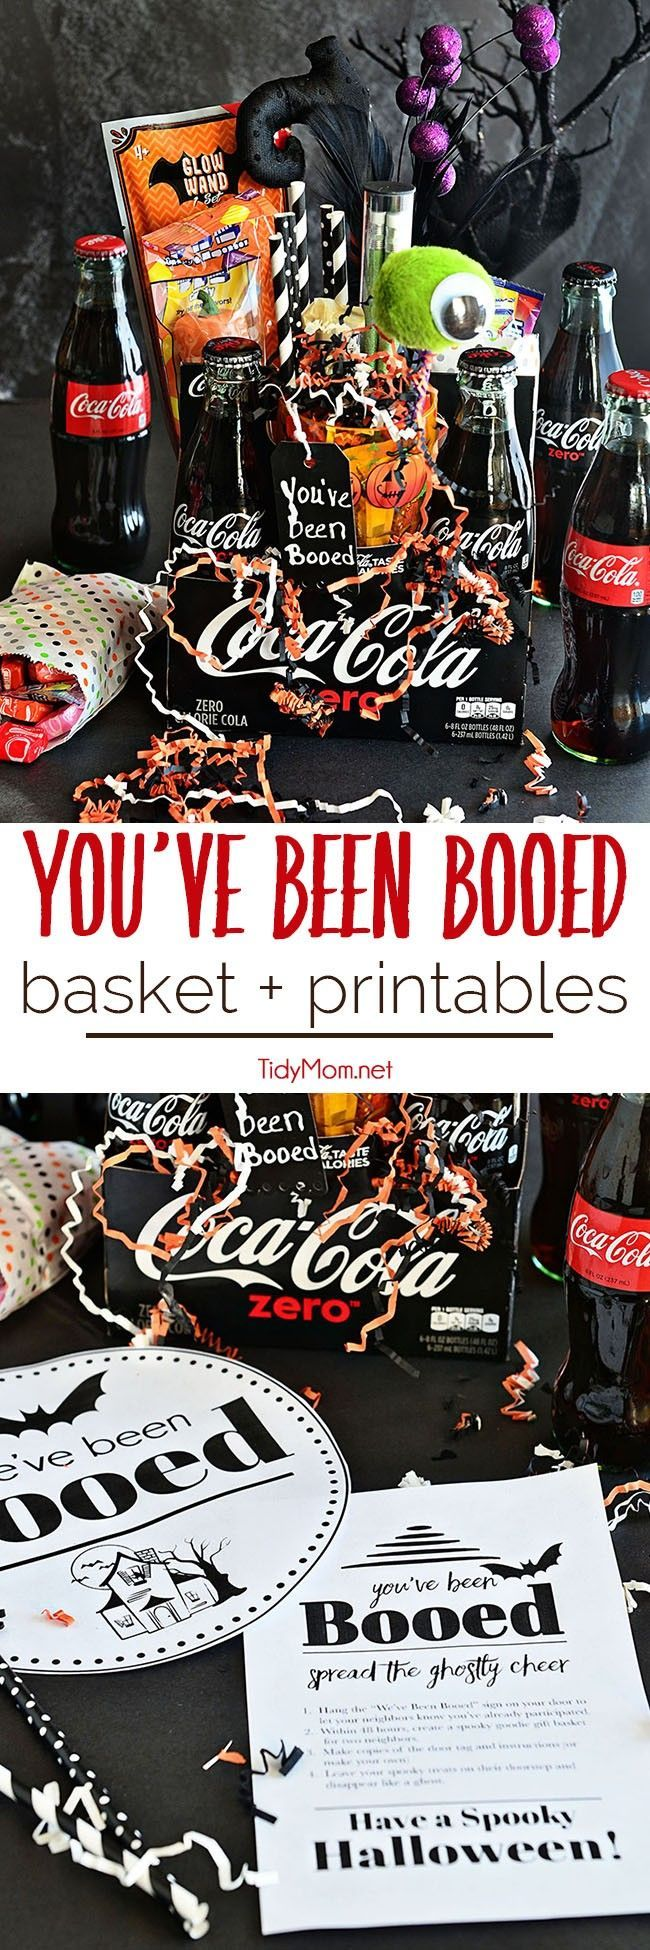 Have fun with yourneighbors – You've Been BOOed! ThisHalloween surprise is fun wayto create excitement and smiles around your neighborhood. Coca-Cola makes a great Halloween Boo Basket with free You've been Booed printable at TidyMom.net